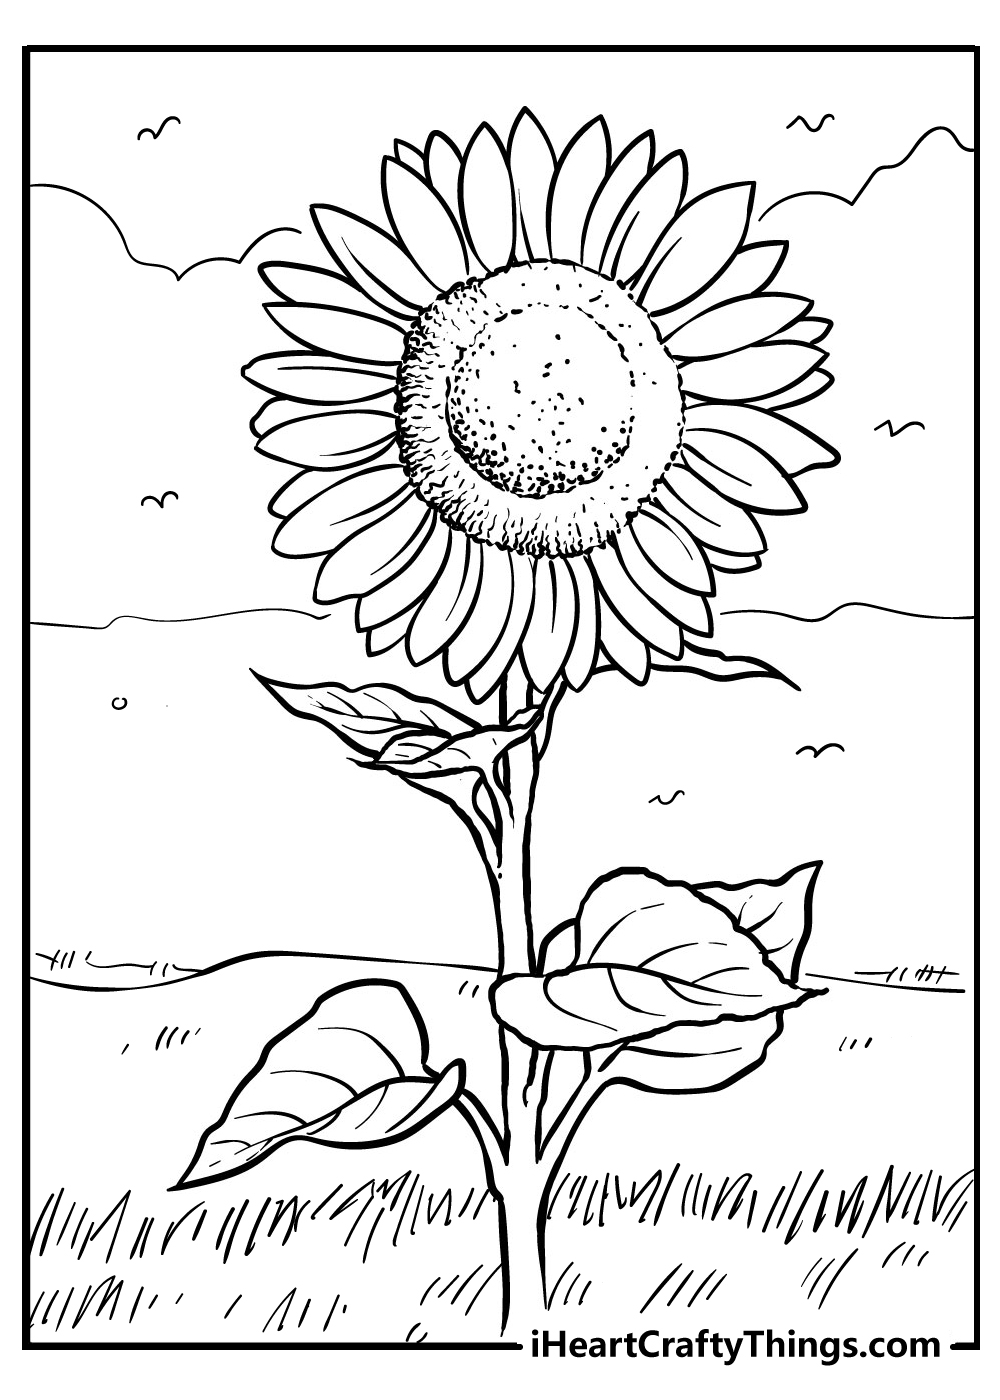 free printable sunflower coloring images for adults